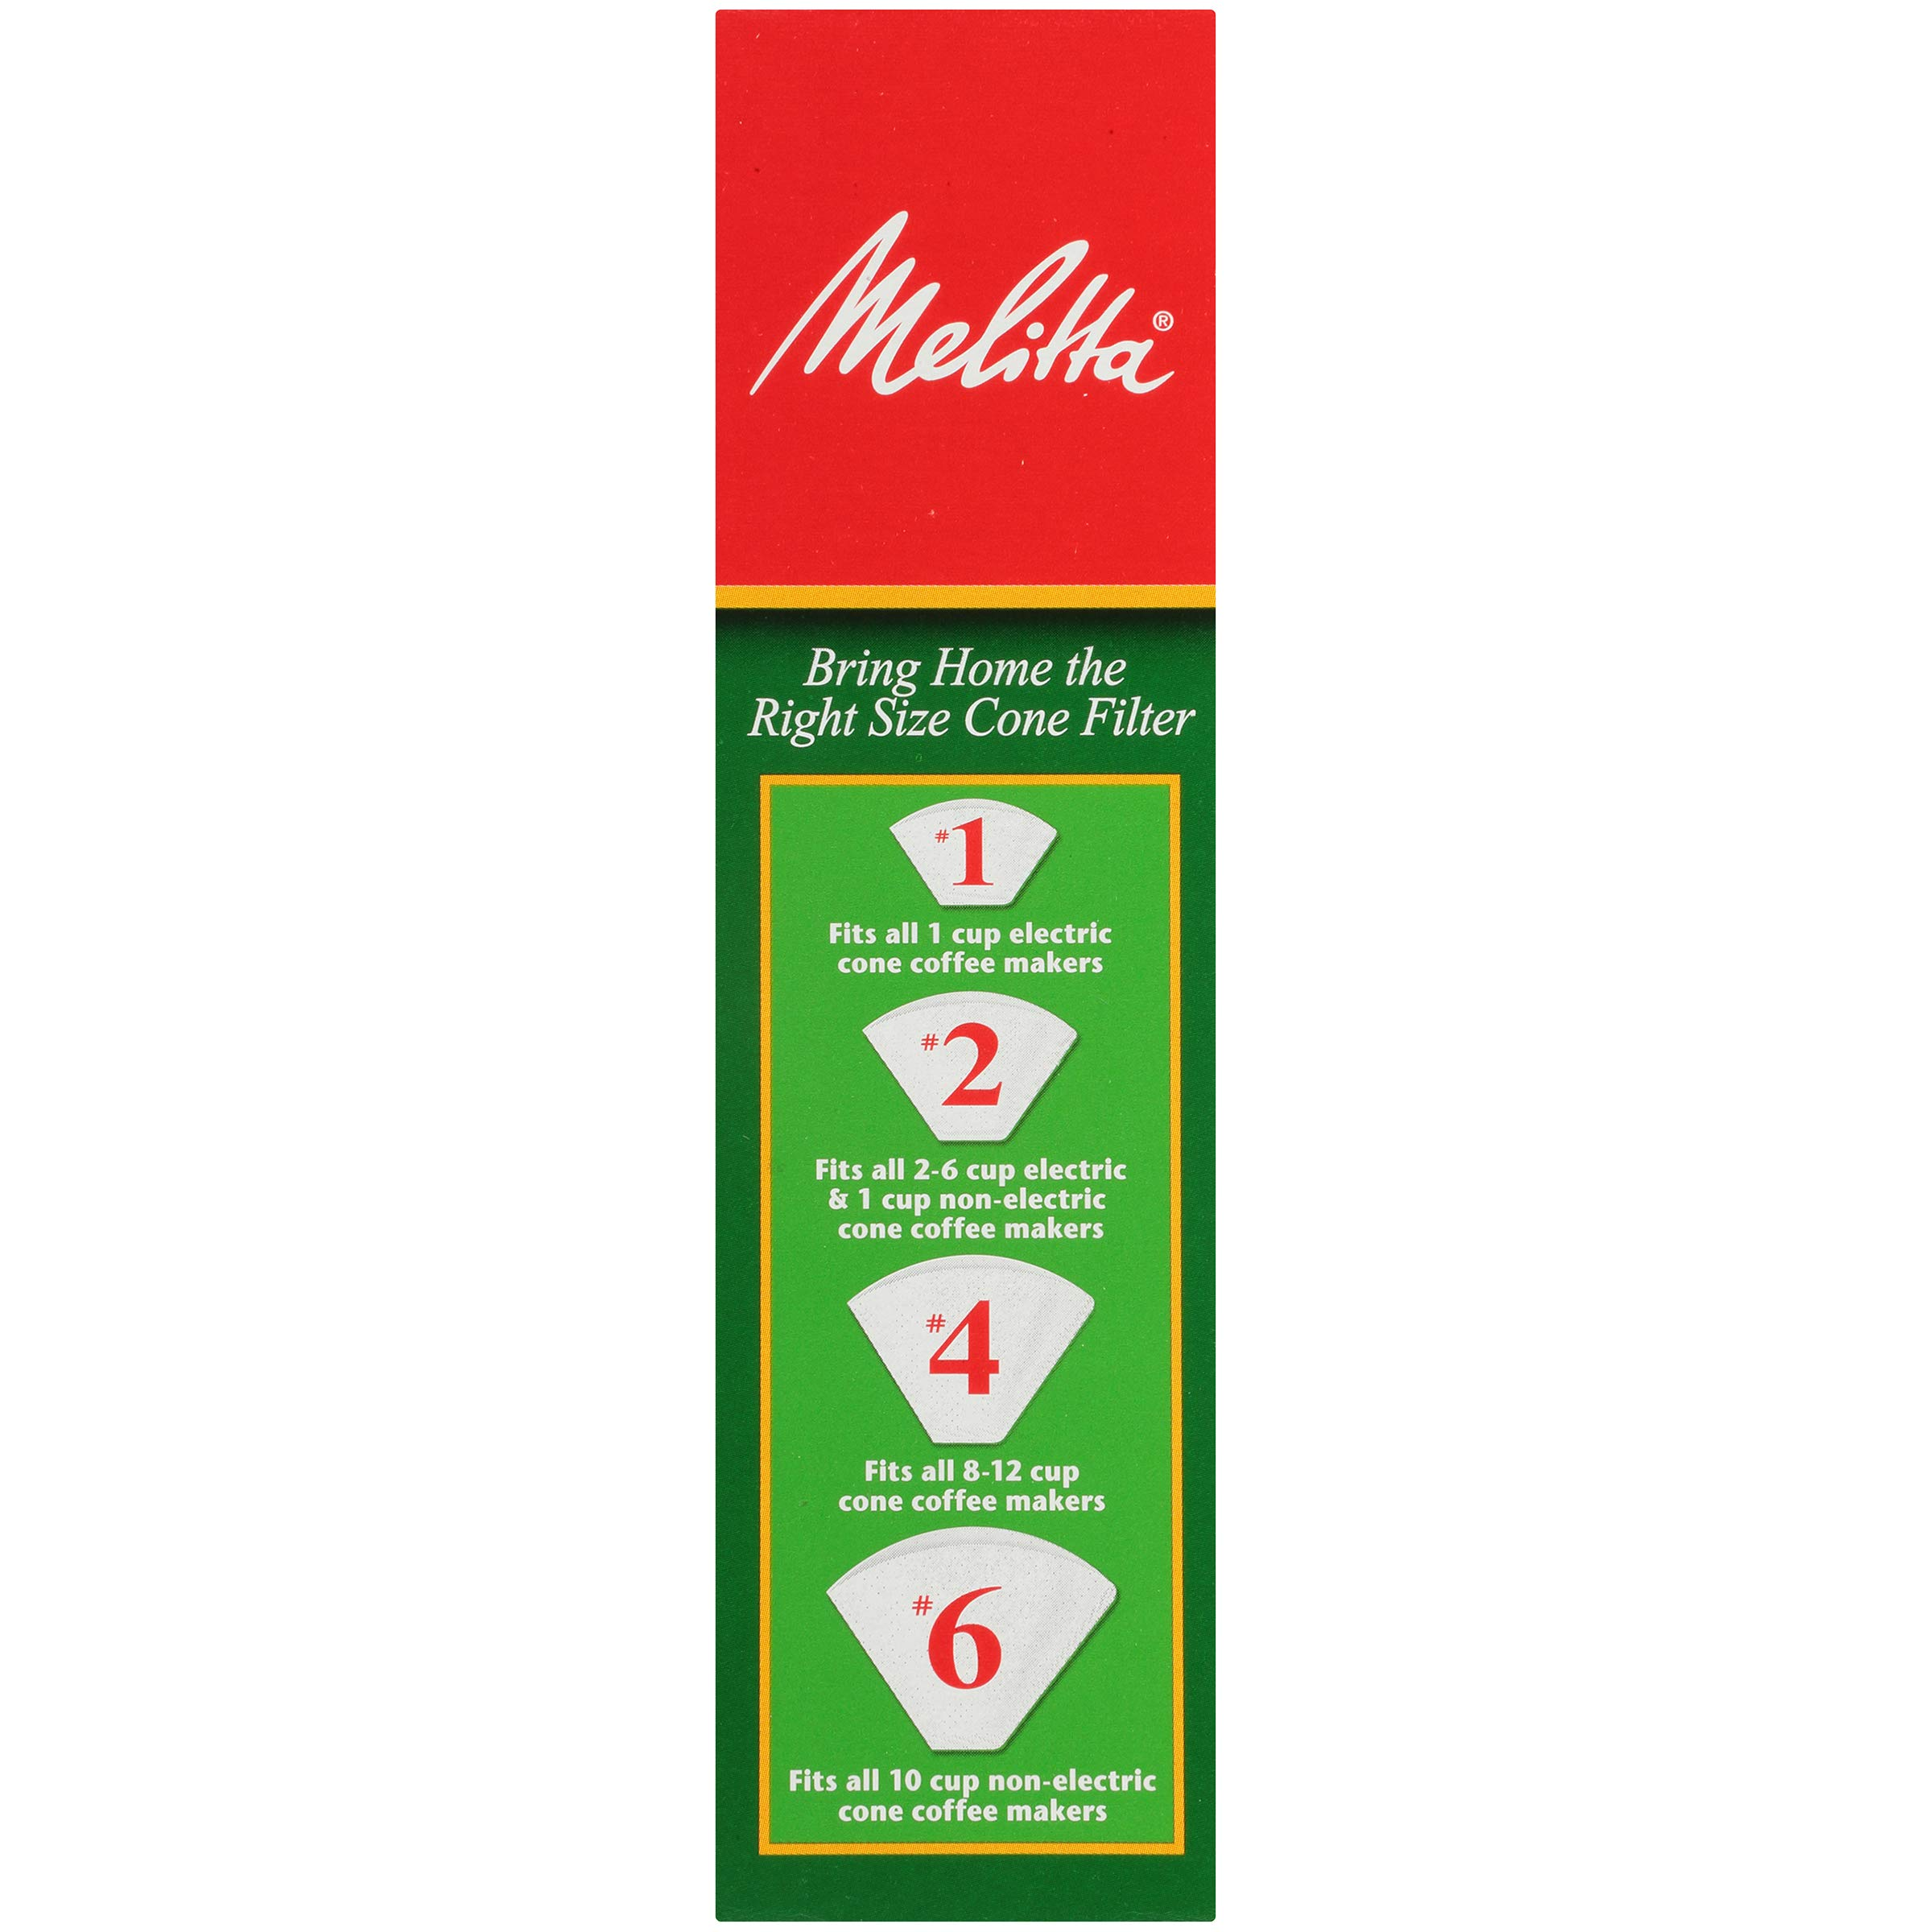 Melitta (624102C) #4 Super Premium Cone Coffee Filters, White, 100 Count (Pack of 12) Replacement Coffee Maker Filters by Melitta (Image #2)